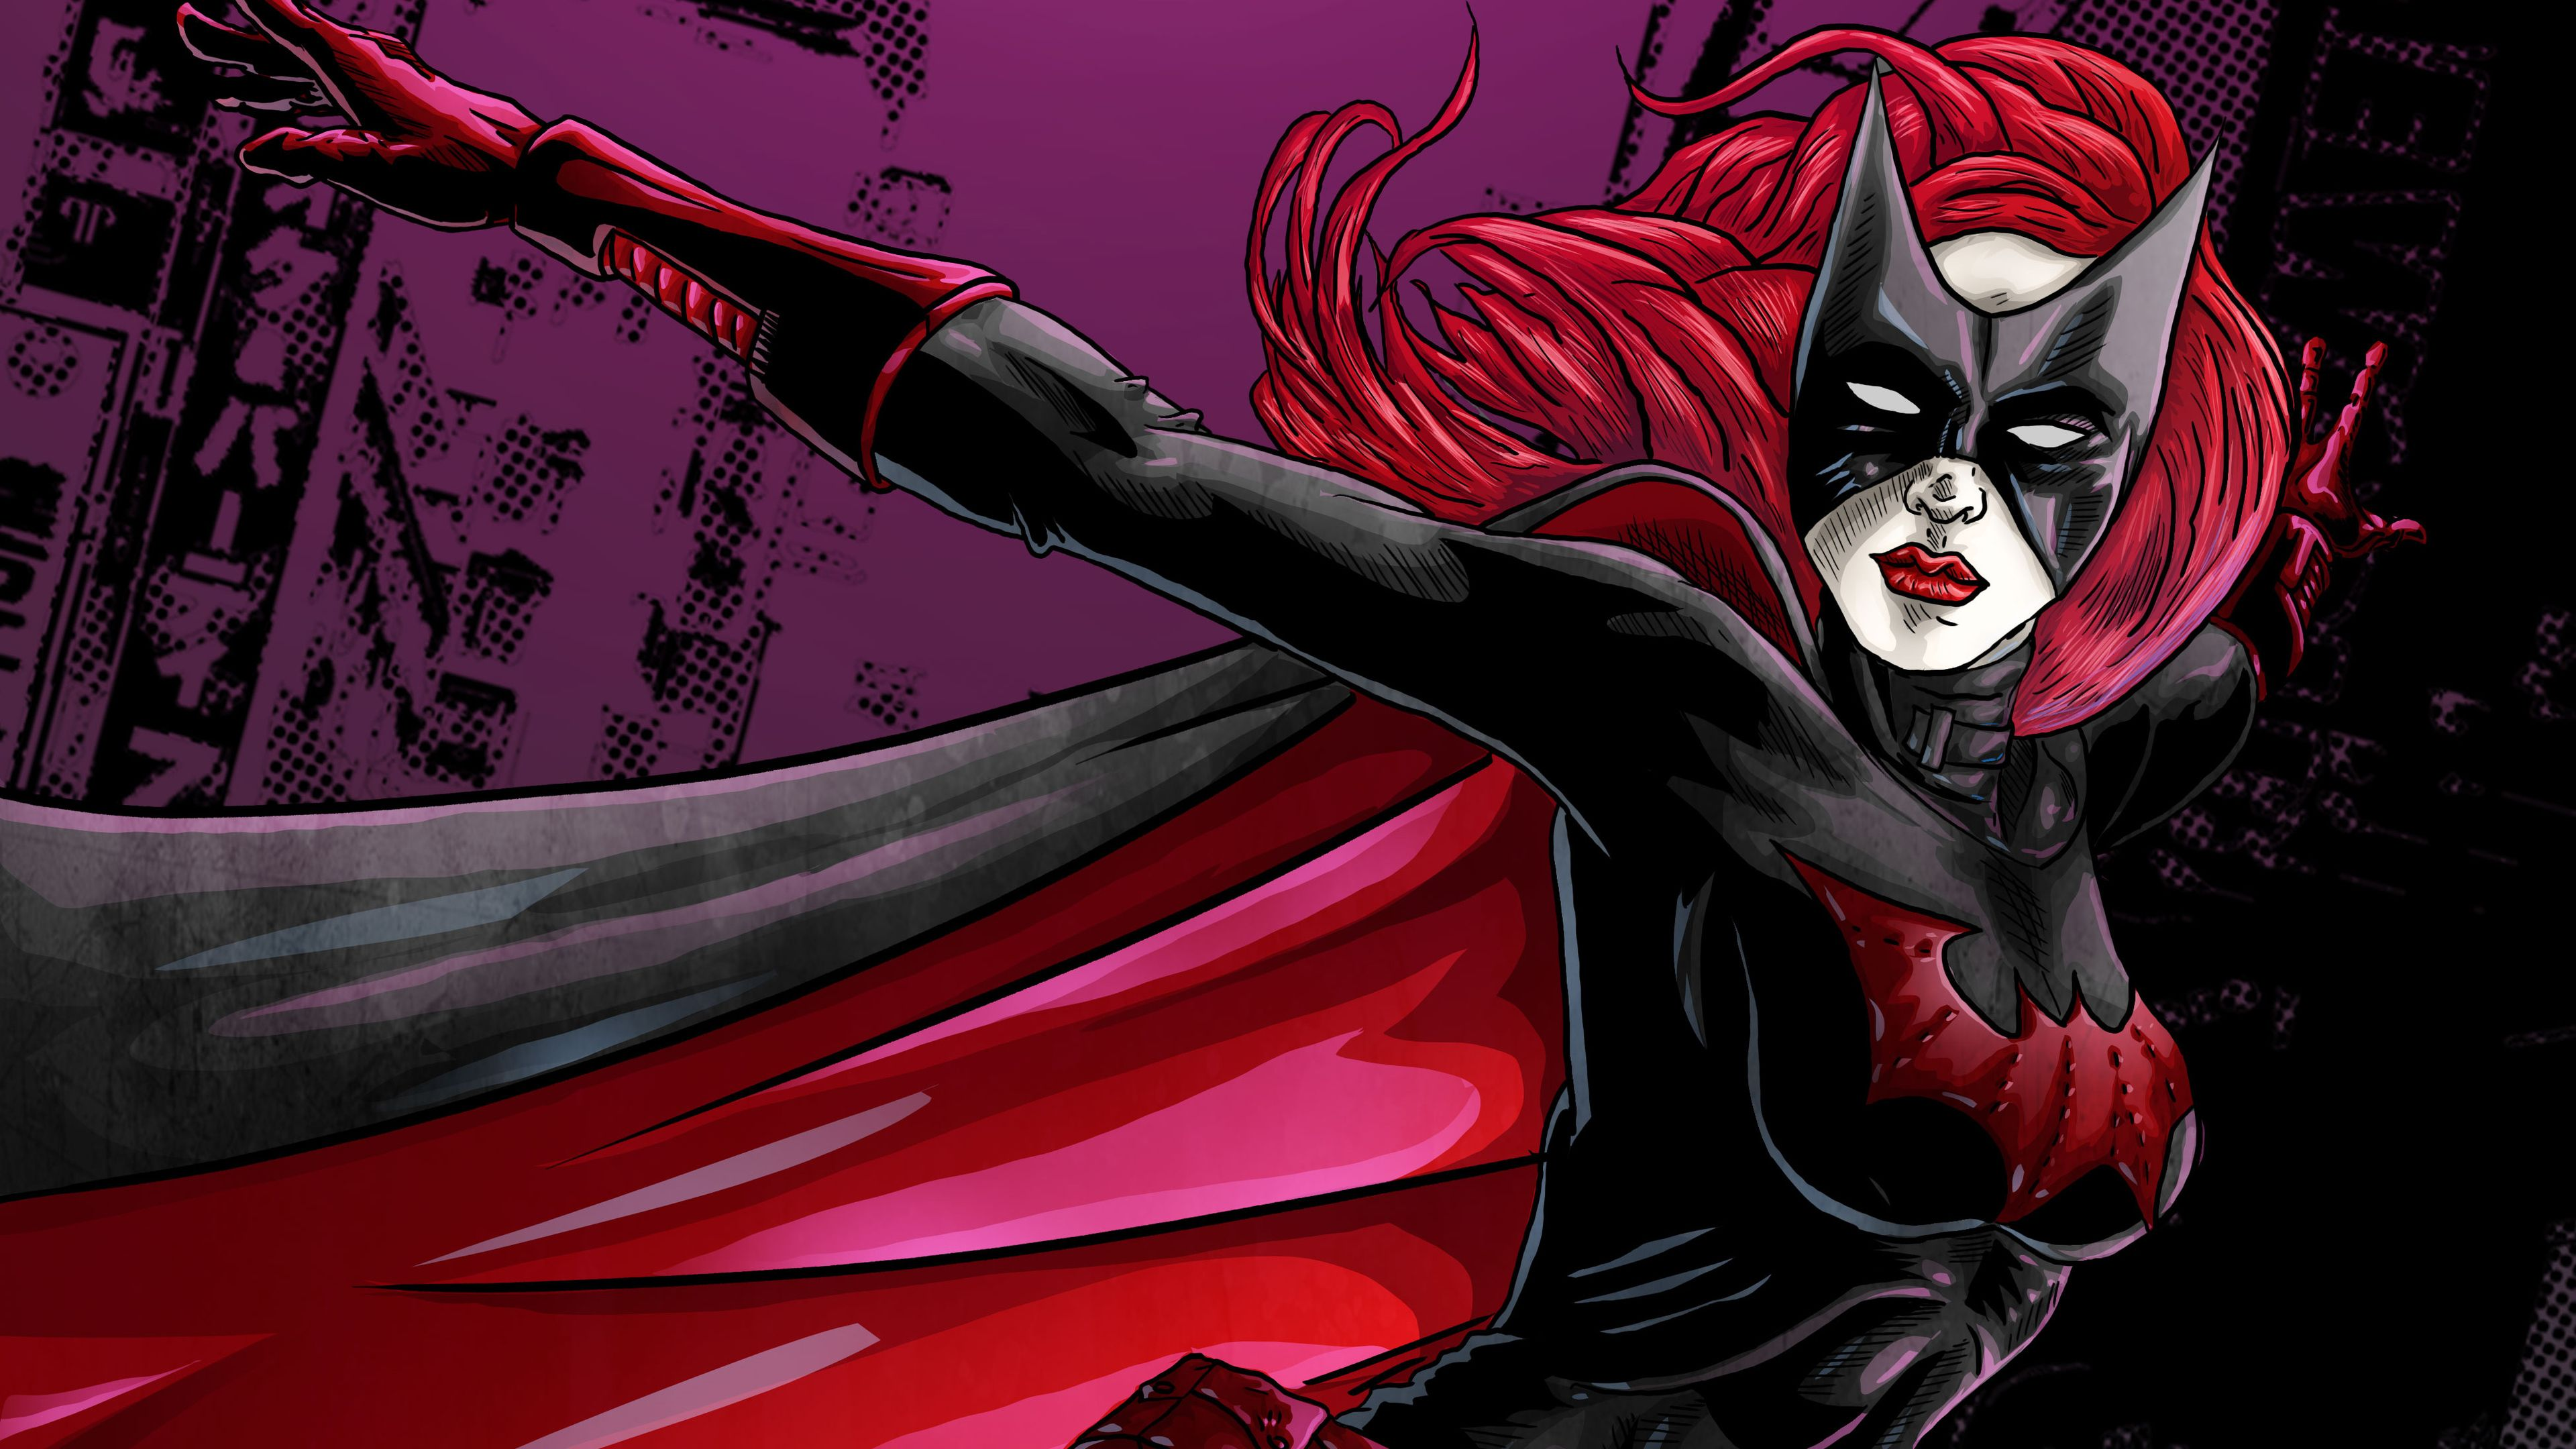 Batwoman 4k Superheroes Wallpapers Hd Wallpapers Digital Art Wallpapers Batwoman Wallpapers Artwork Wallpapers 4k Wallpap Batwoman Superhero Art Wallpaper